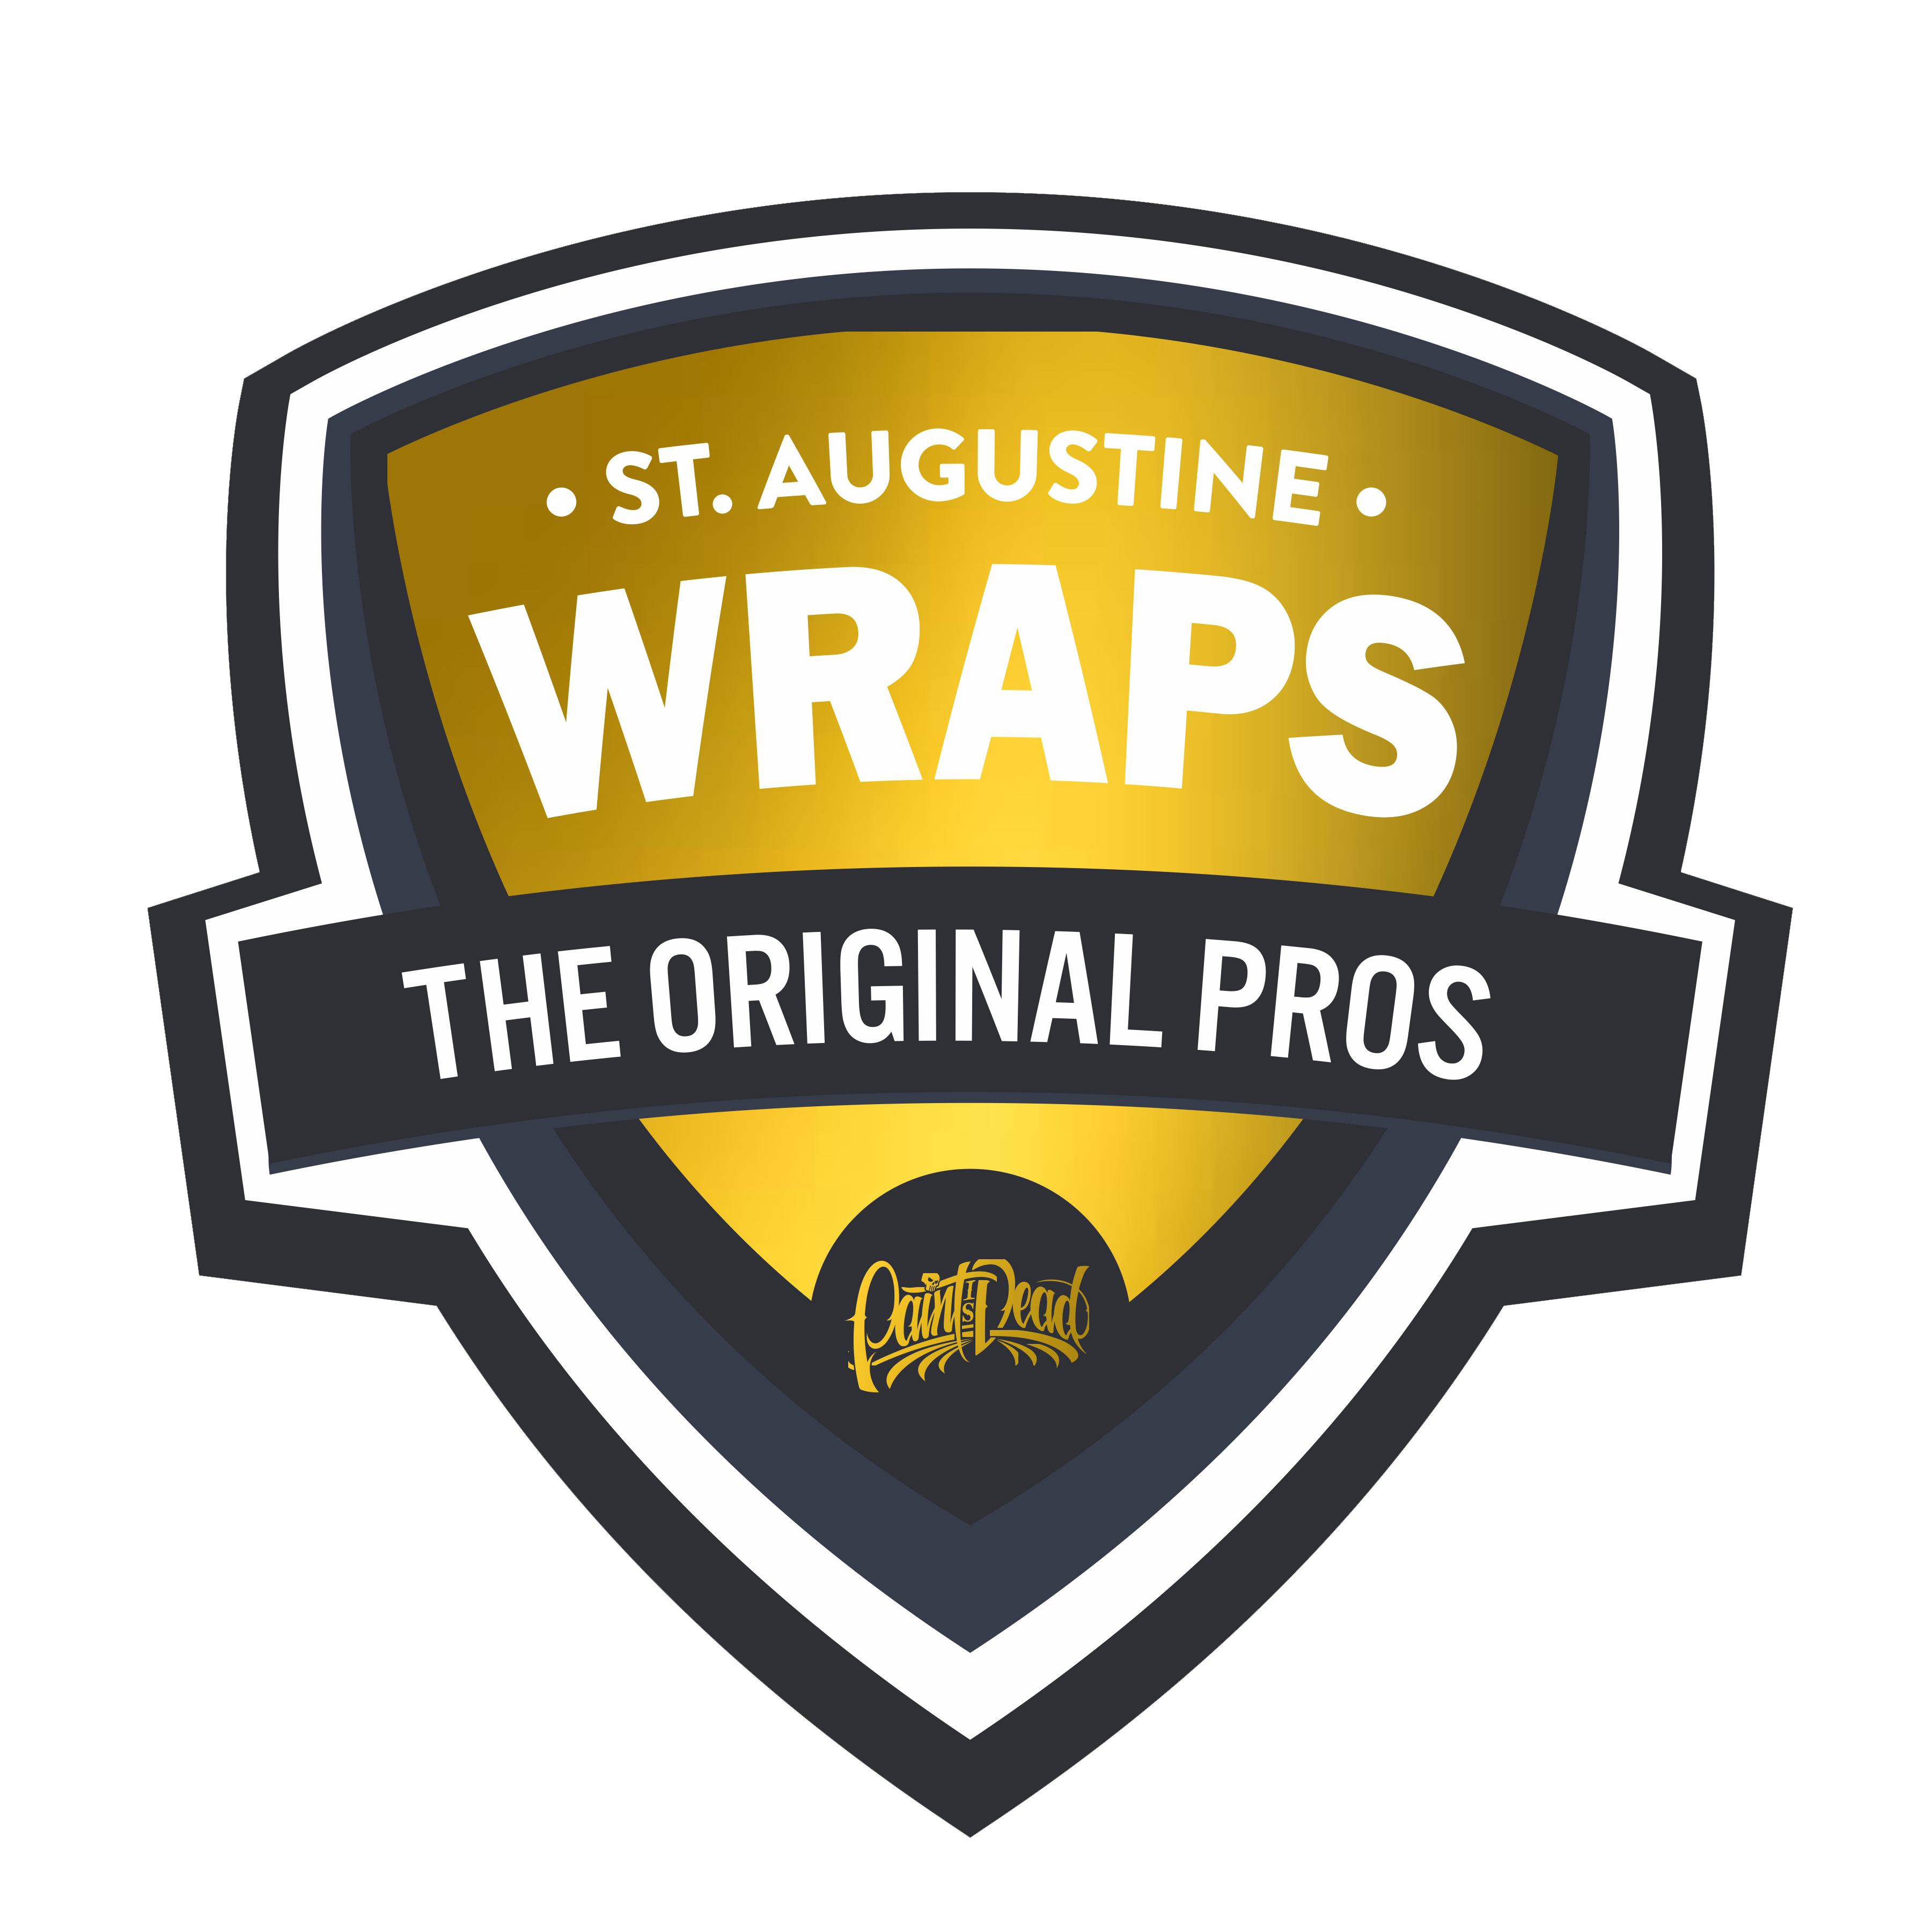 vehicle-wraps-st-augustine